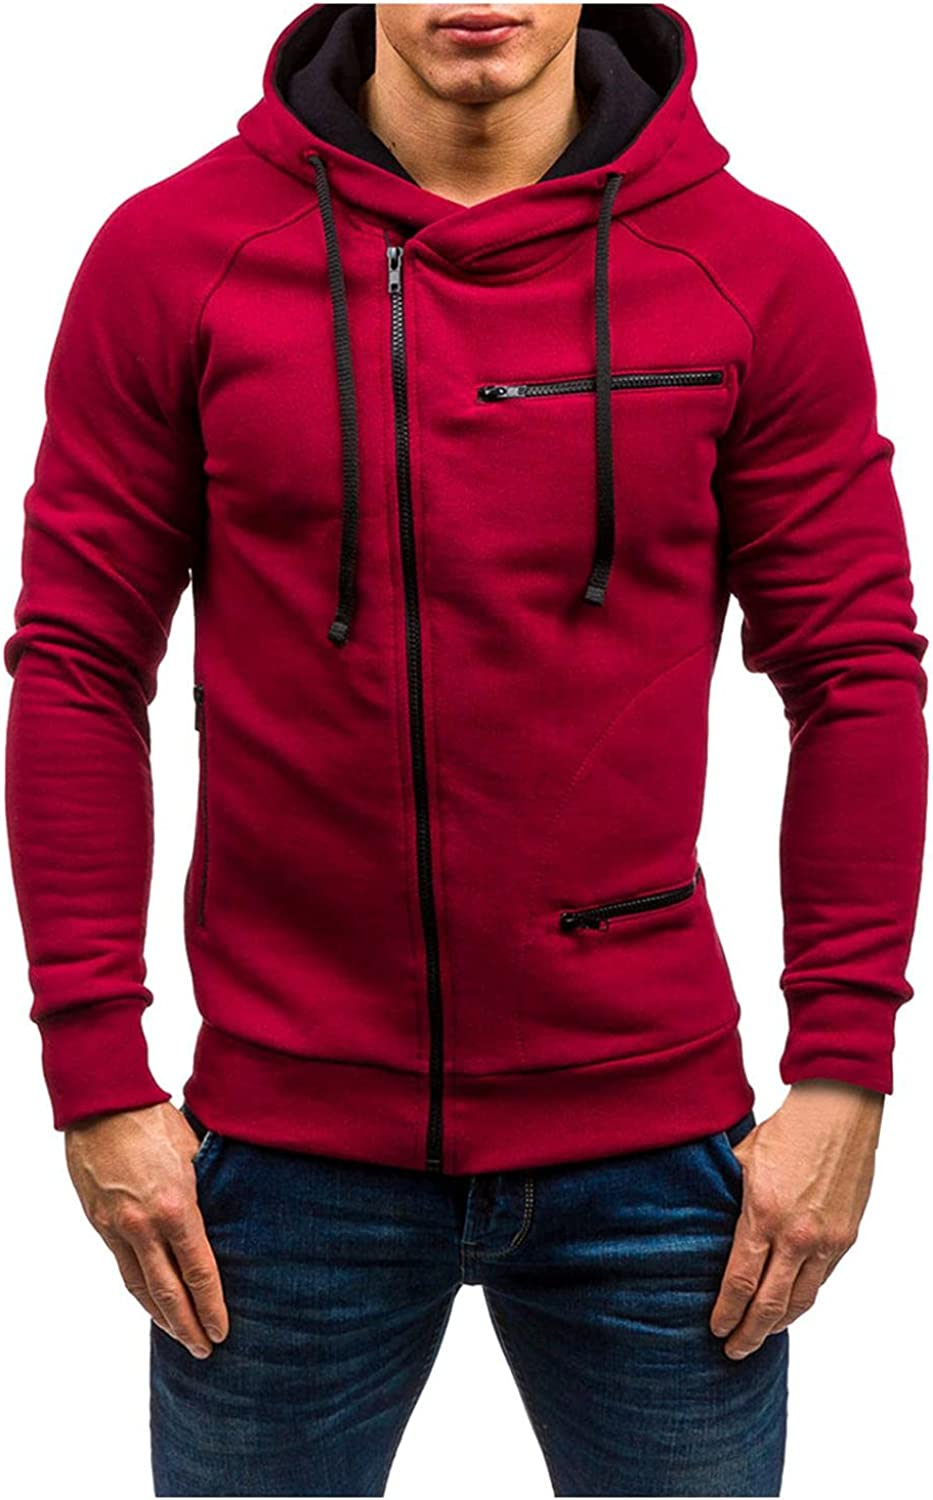 JSPOYOU Hoodies Jacket For Men Outdoors Zip Up Big And Tall Short Coat Casual Slim Fit Lightweight Outerwear